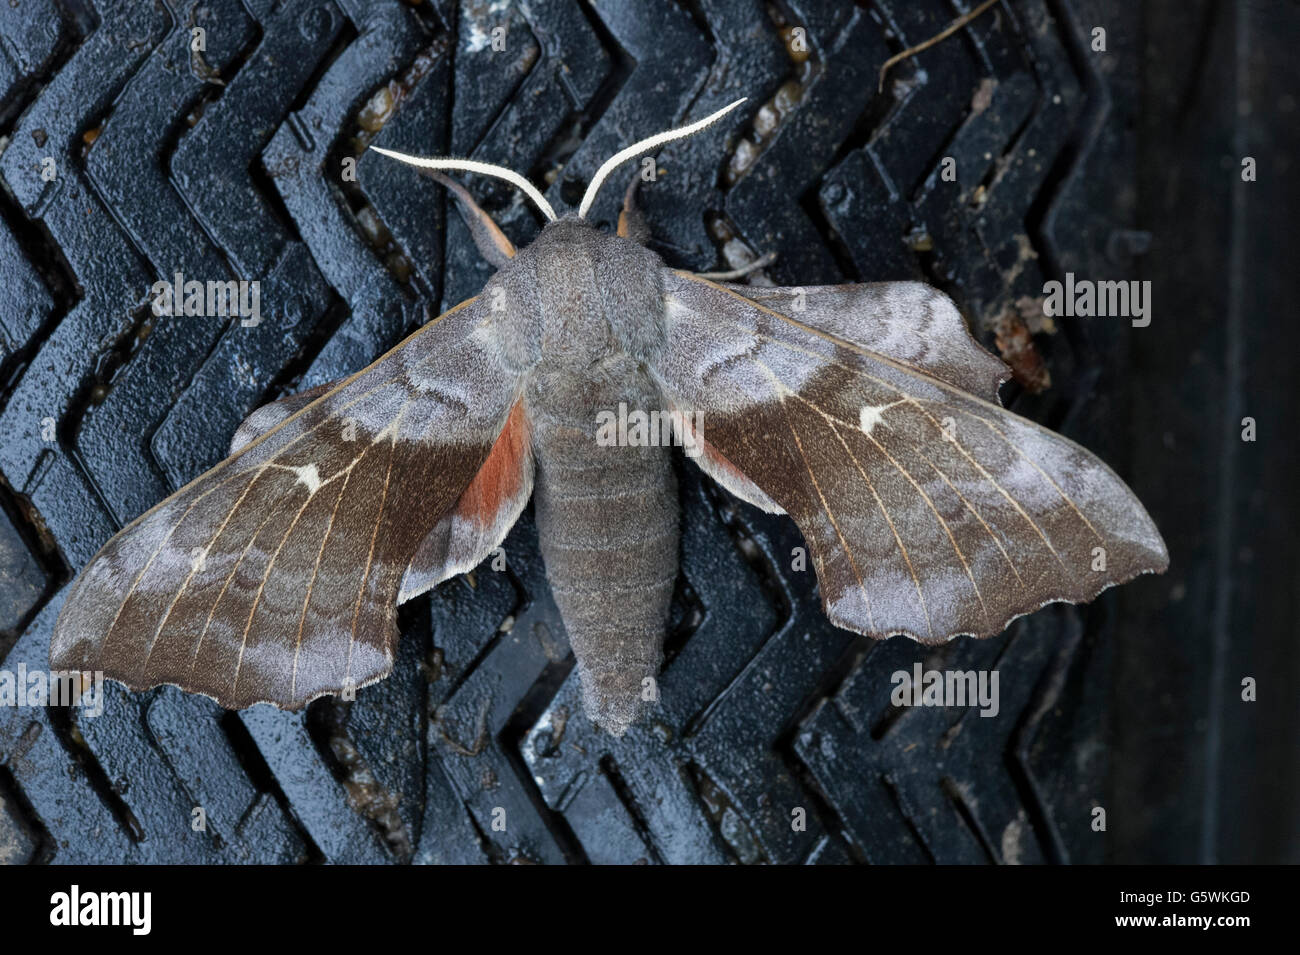 A Poplar Hawk Moth (Laothoe populi) with its wings spread while resting on the tyre of a garden wheelbarrow. - Stock Image